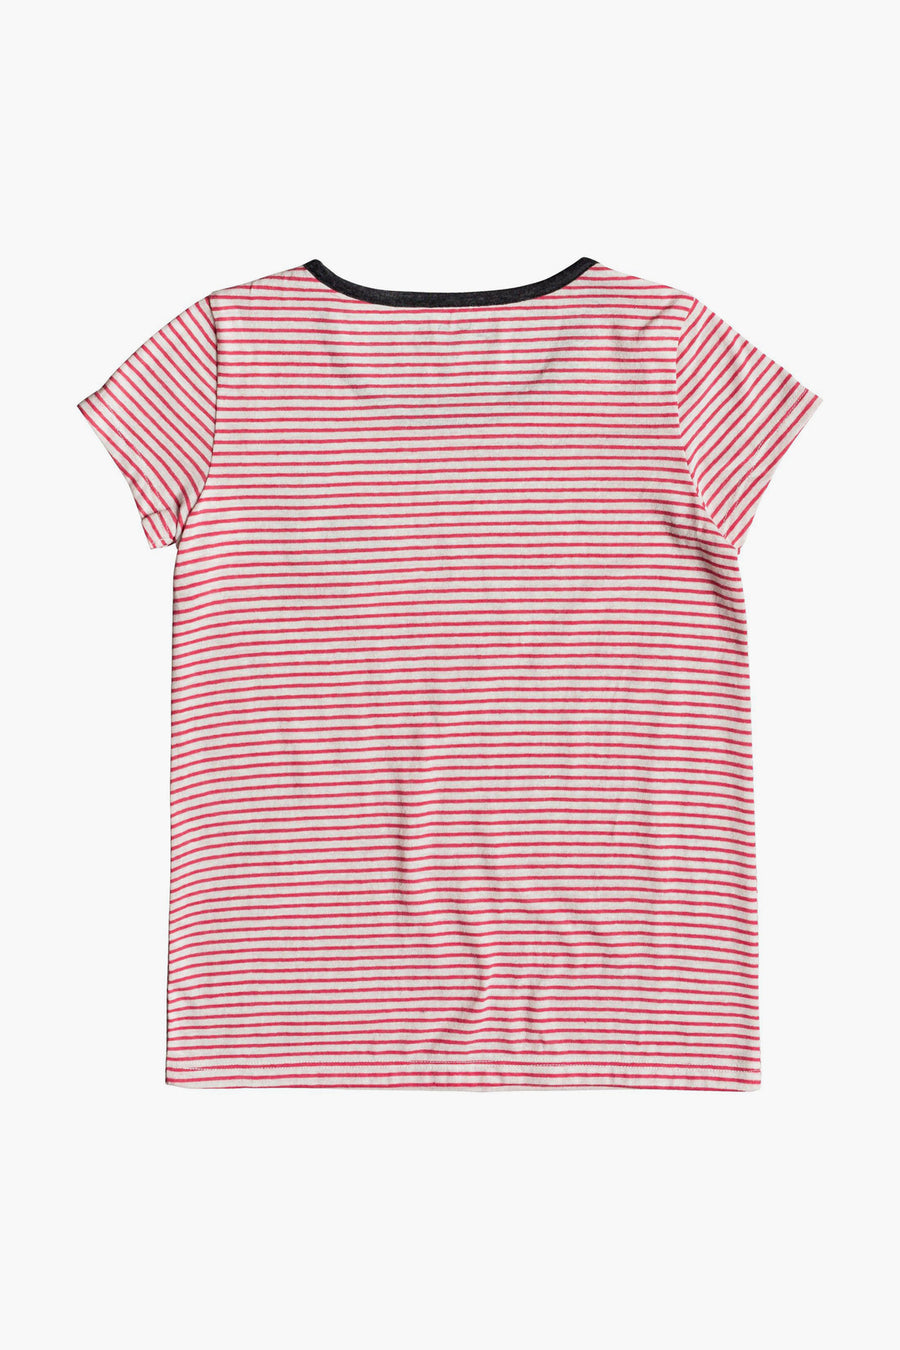 Roxy Patches Tee